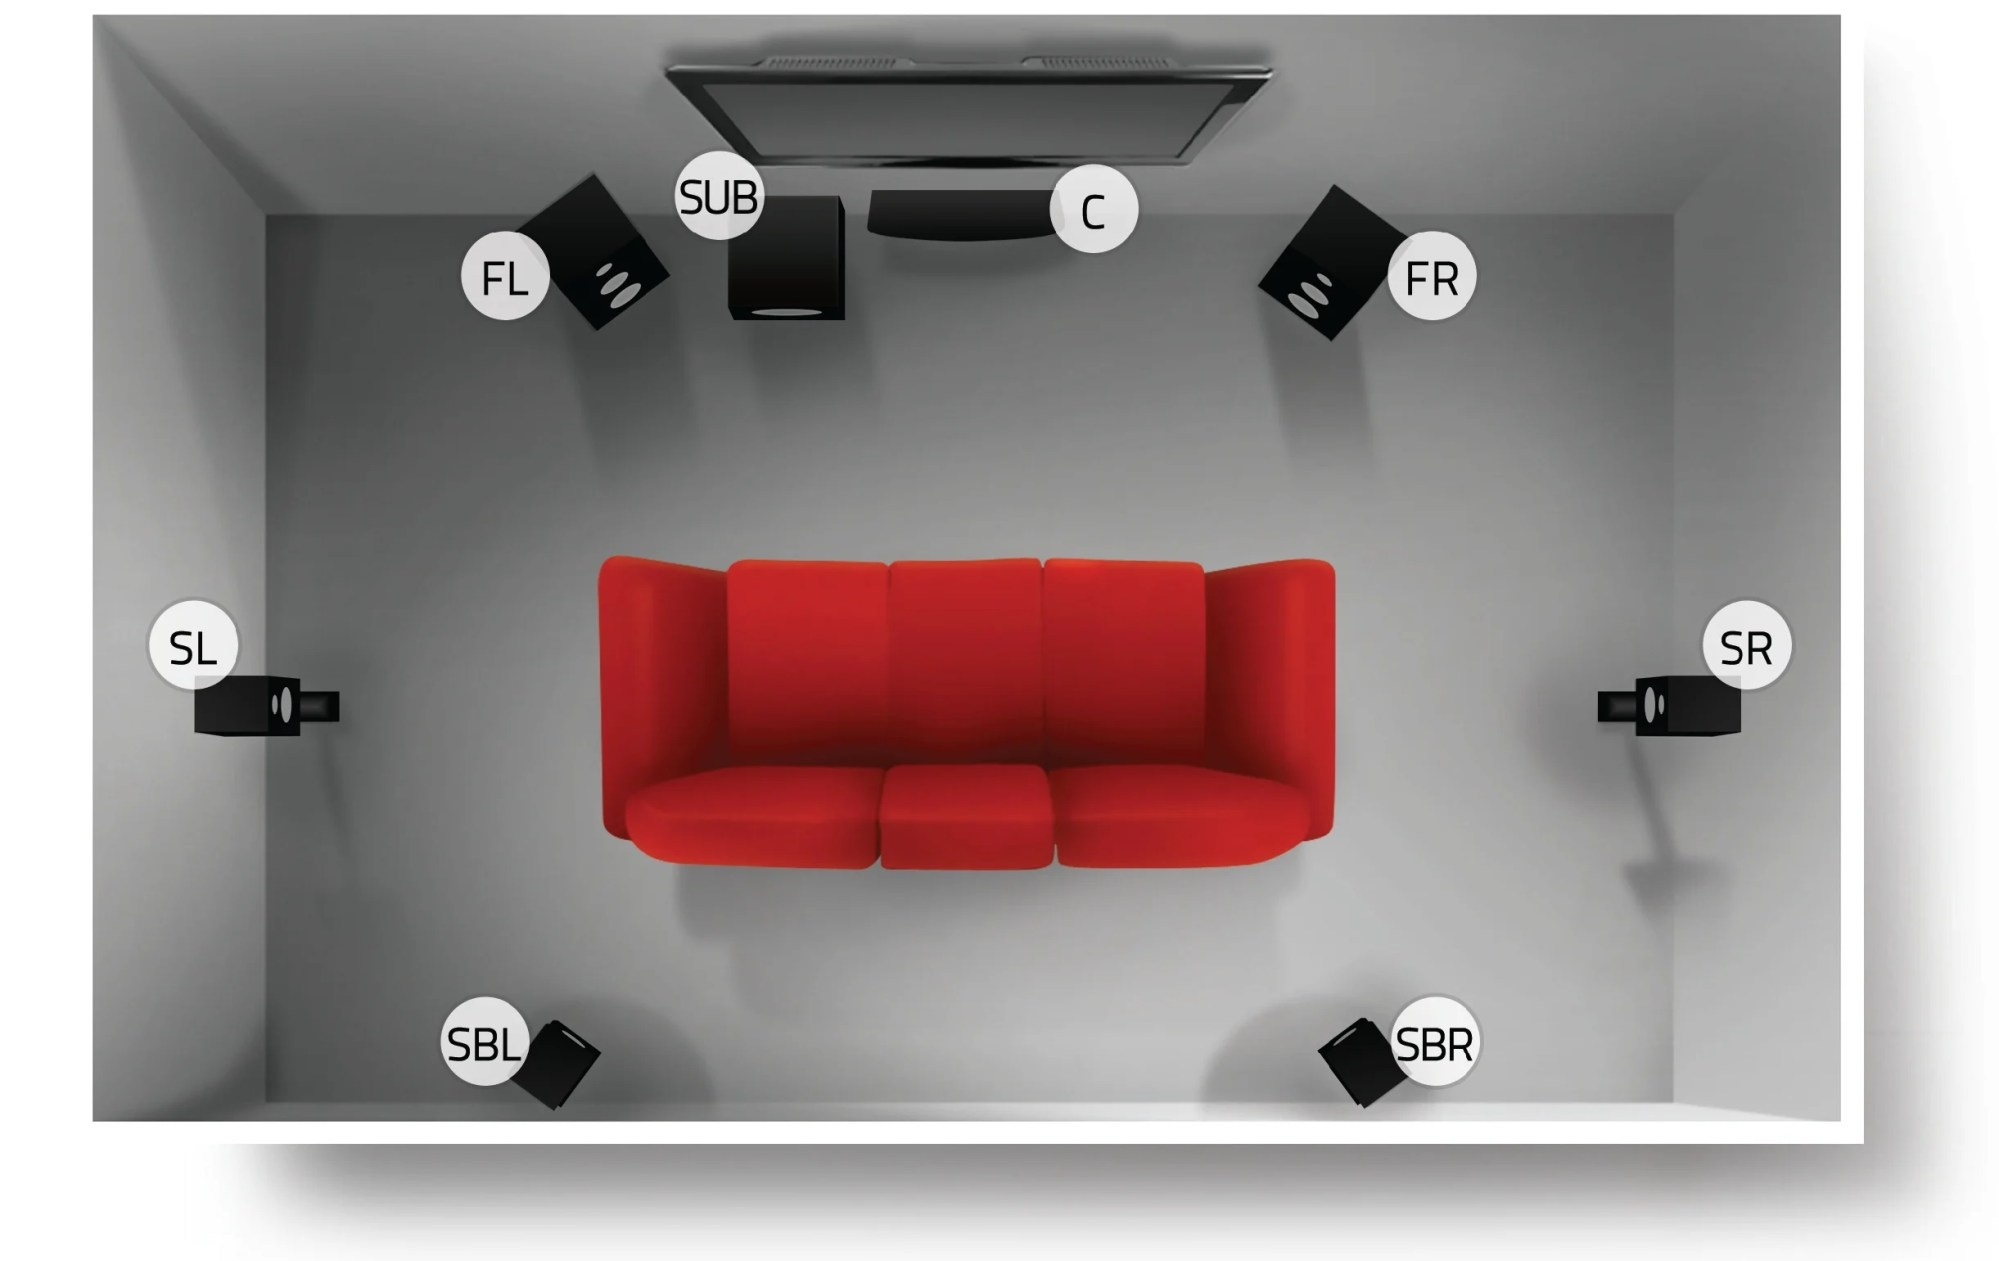 hight resolution of 5 1 7 1 surround sound speaker system setup placement guide surround sound speaker placement ceiling on 5 1 speaker setup diagram source home theater